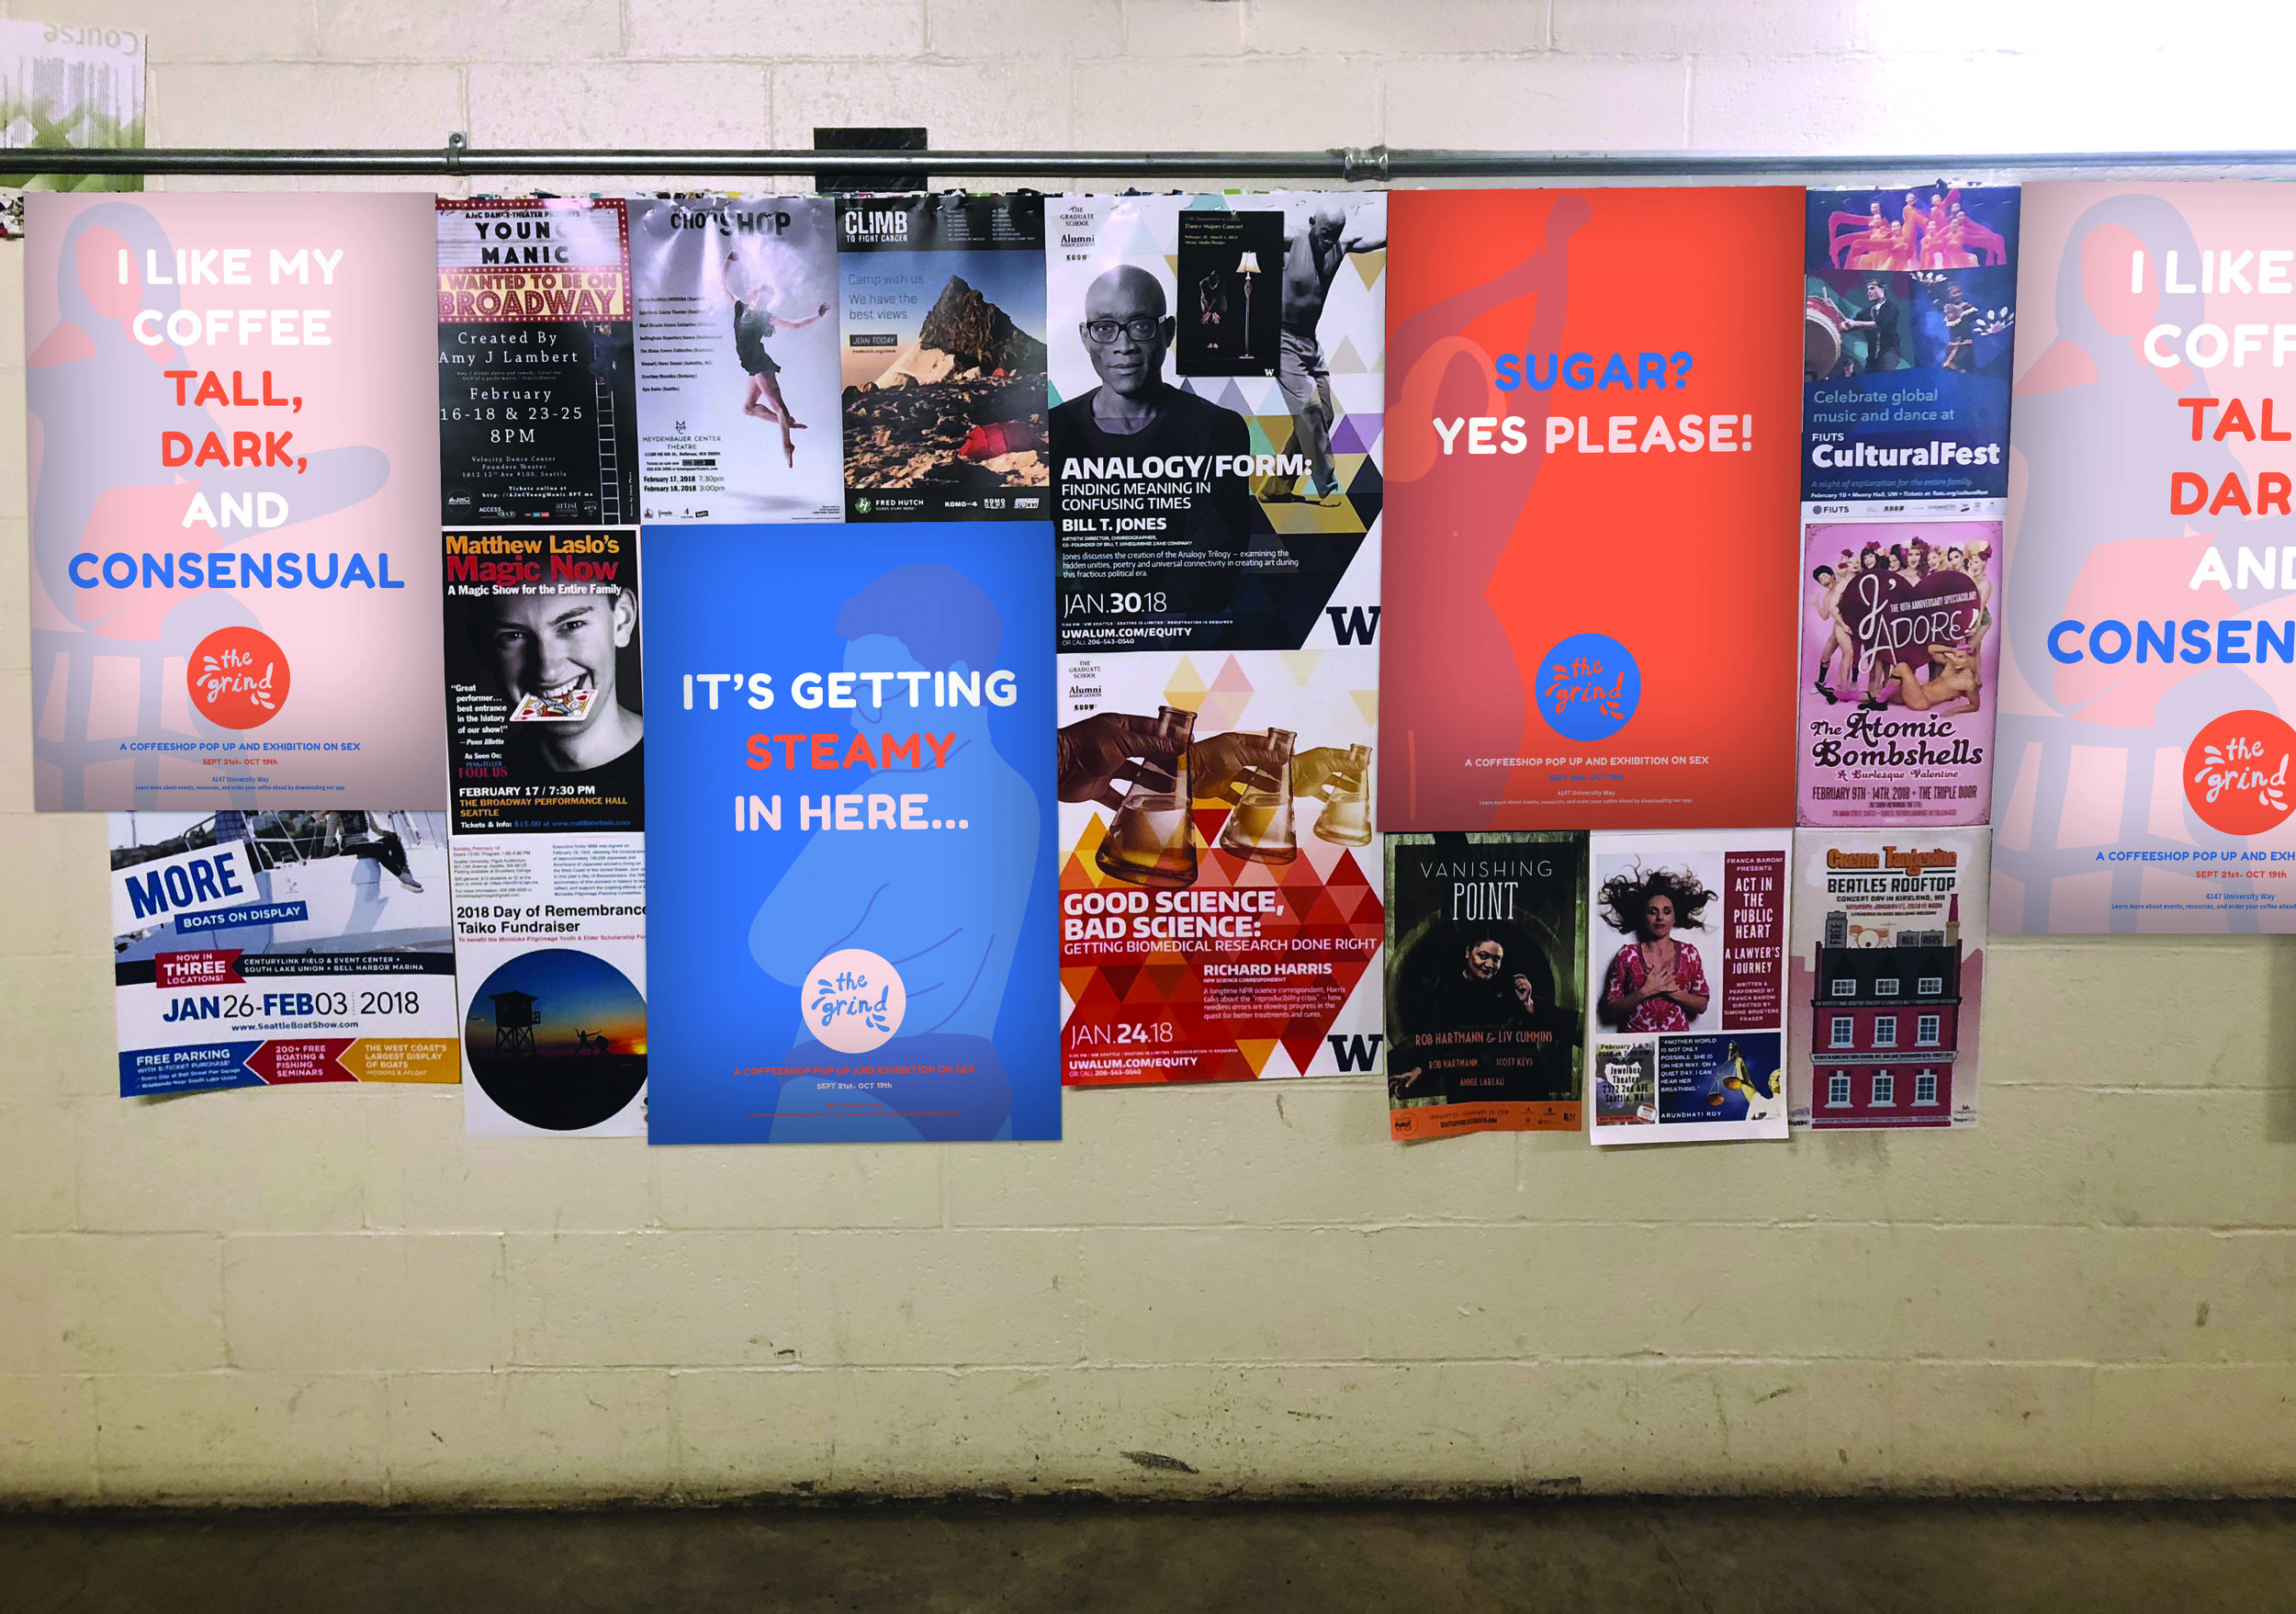 Advertising - Using our branding and illustration style, posters, ads, and pamphlets have been create intrigue surrounding the exhibit and drive traffic into the space.